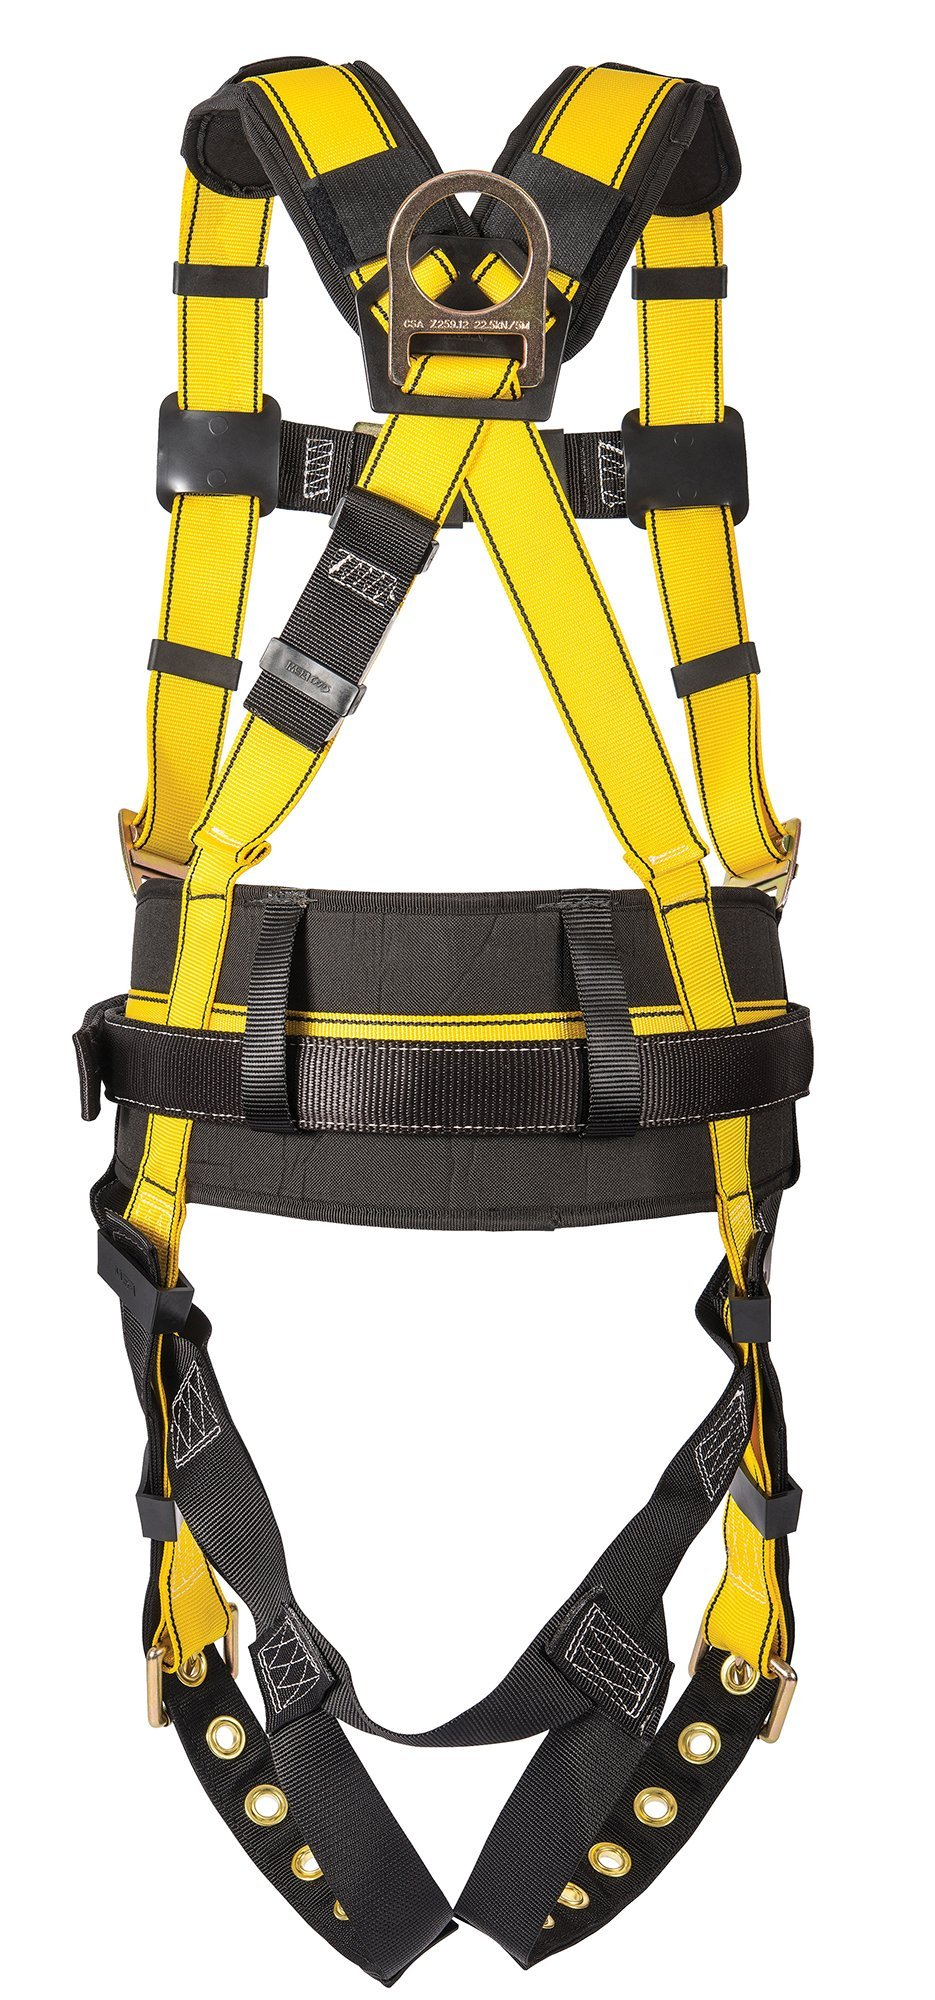 MSA 10077571 Workman Construction Harness with Back/Hip D-Rings, Tongue Buckle Leg Straps, Qwik-Fit Chest Strap Buckle, Integral Back Pad, Tool Belt and Shoulder Pads, Standard by MSA (Image #4)